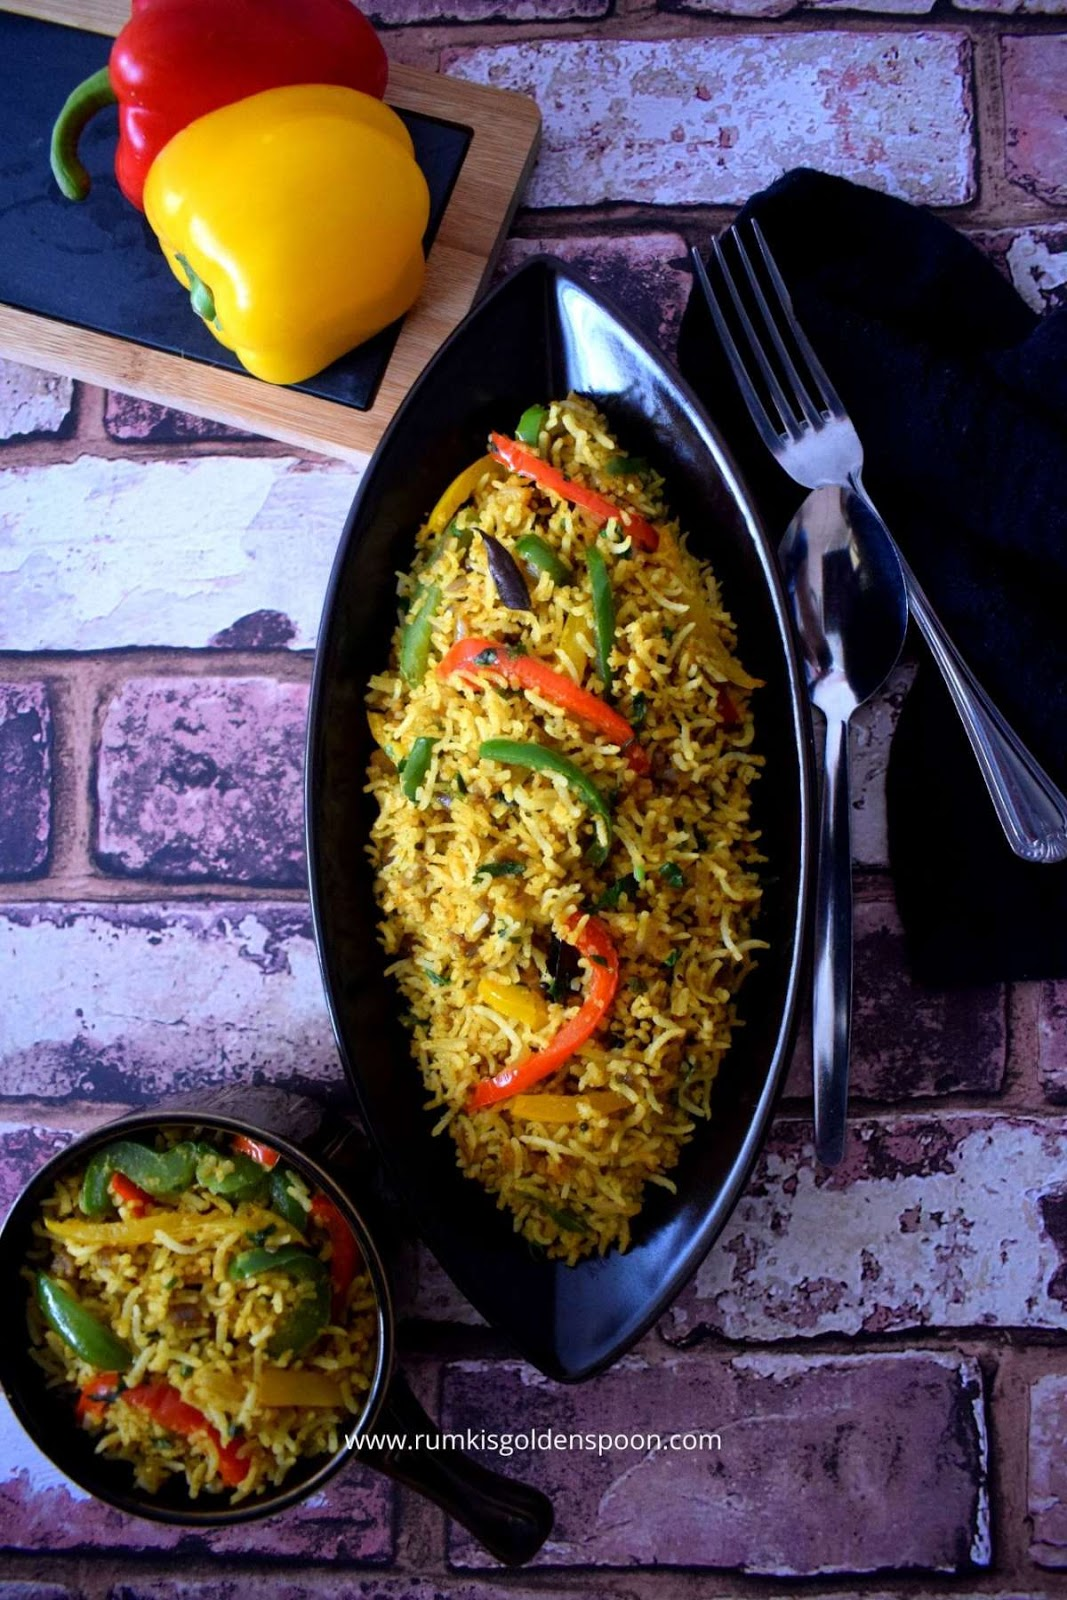 Capsicum Rice, capsicum rice recipe, Capsicum pulao, capsicum masala rice, recipe with capsicum, recipe of capsicum, recipe for capsicum, rice recipe, rice recipes, with rice recipe, rice recipe vegan, rice recipe with vegetables, bell pepper rice, vegan rice recipe, vegan rice recipes, leftover rice recipe, leftover rice recipes, recipe for leftover rice, recipe with leftover rice, Rumki's Golden Spoon